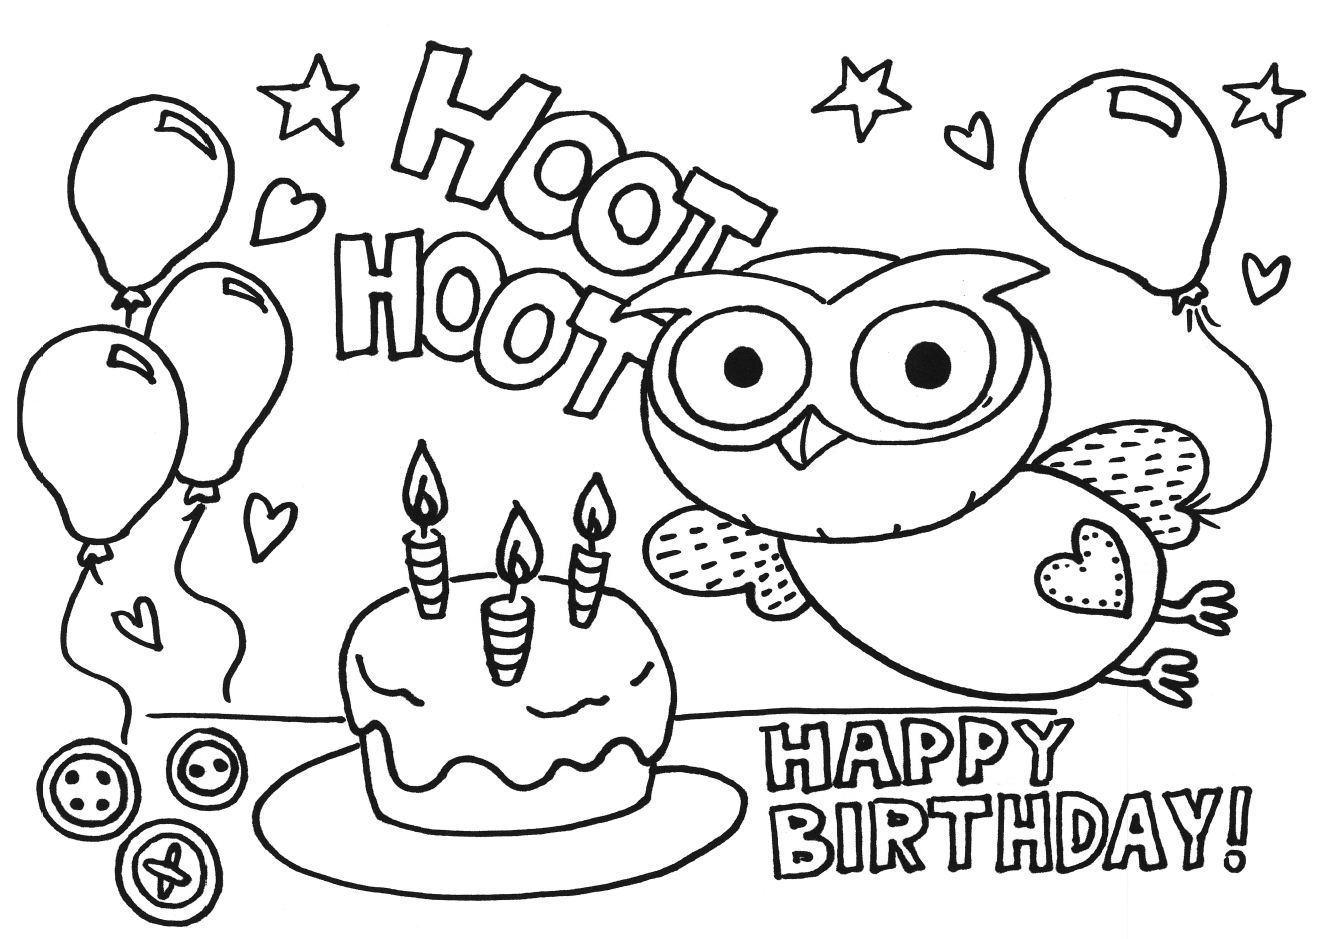 happy birthday sign coloring pages ; birthday-printable-coloring-pages-happy-birthday-coloring-pages-happy-birthday-jesus-coloring